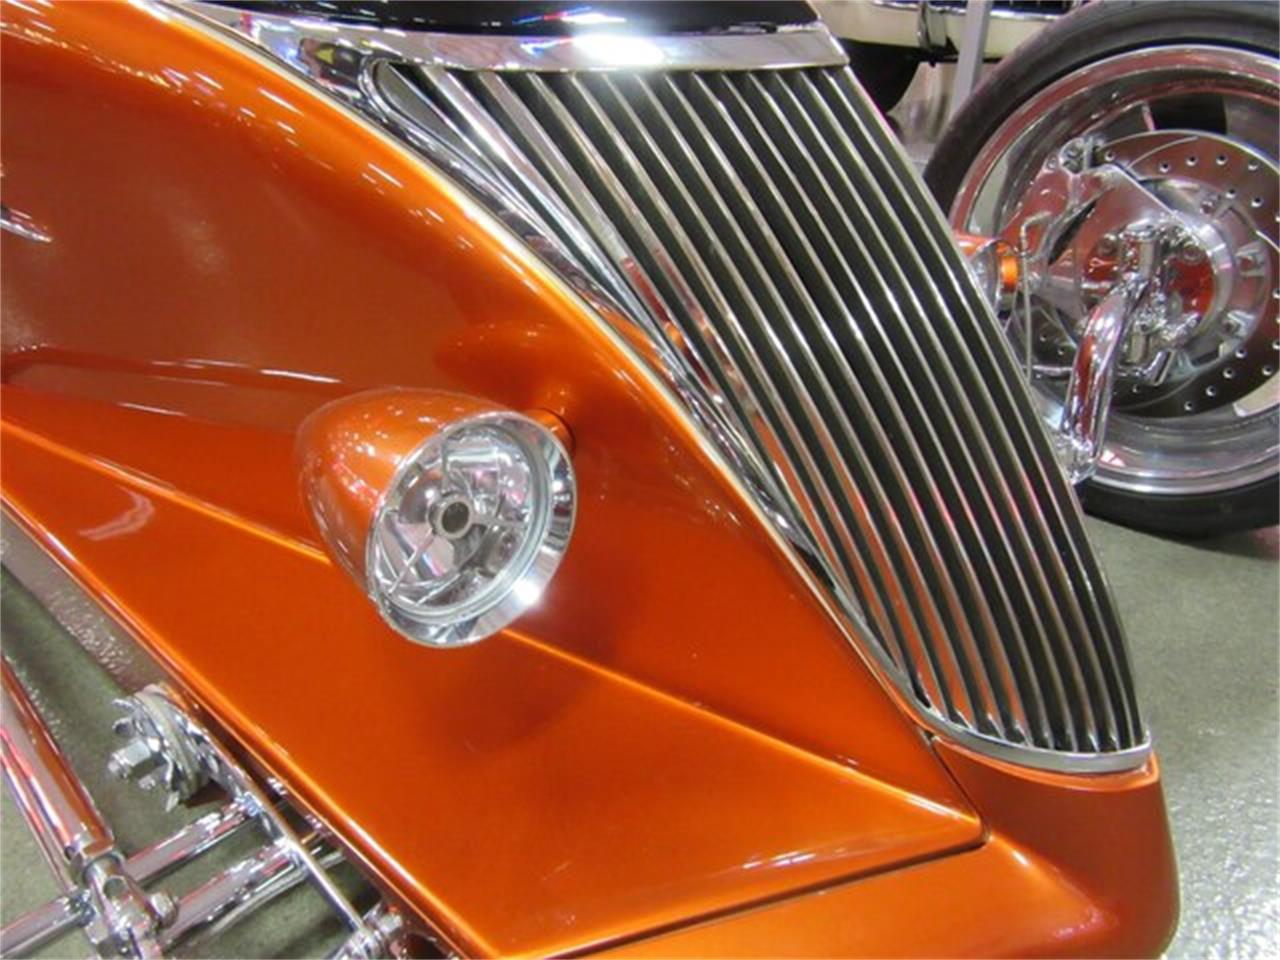 2006 Custom Roadster for sale in Greenwood, IN – photo 7